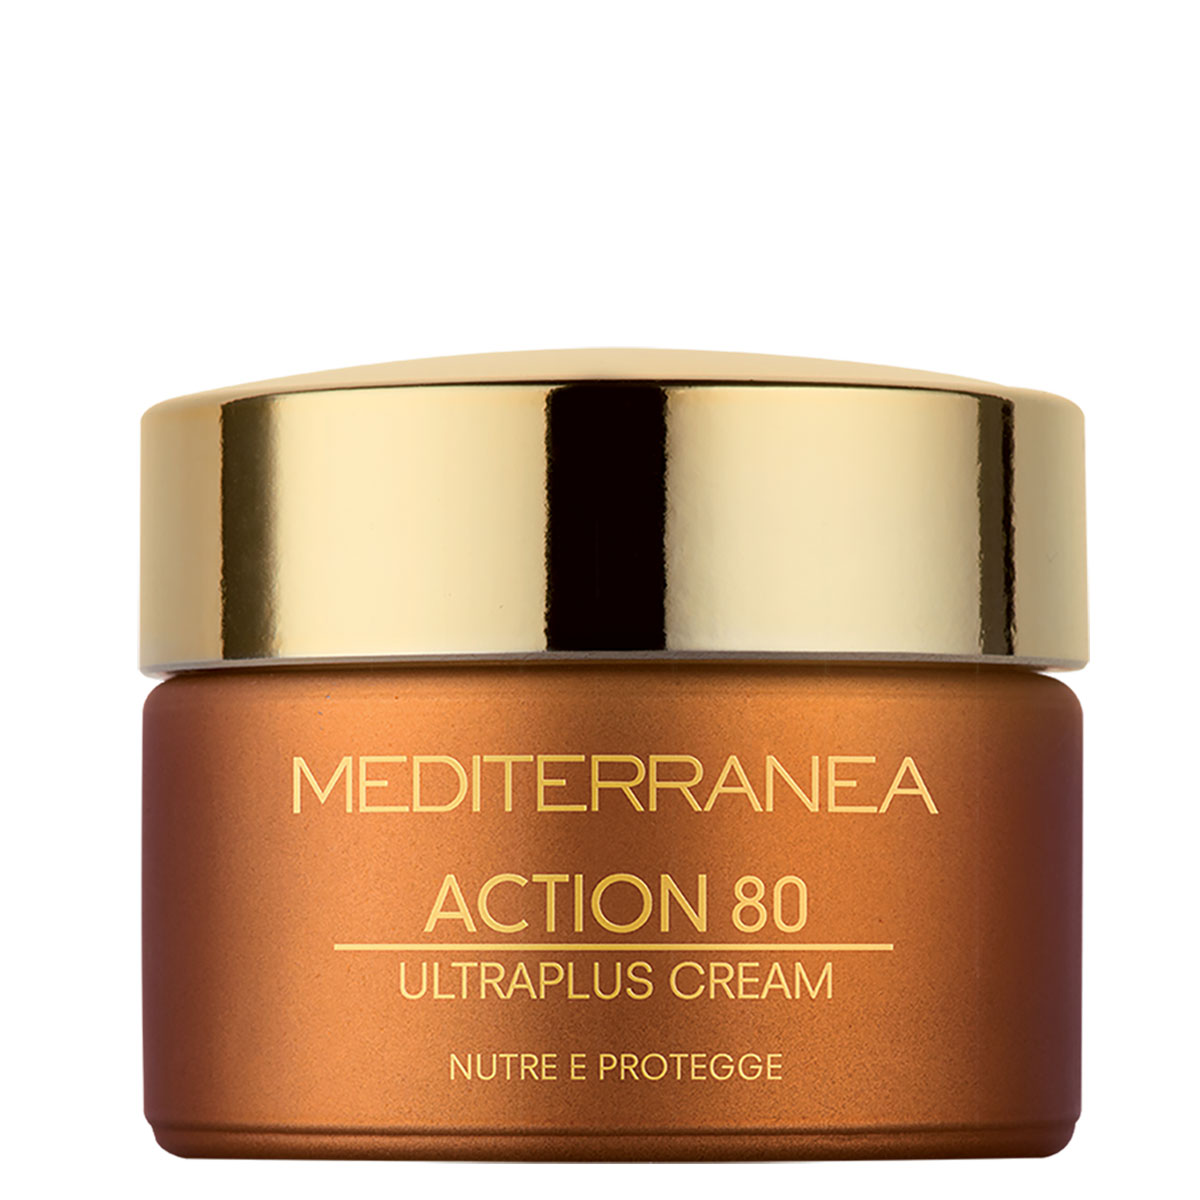 ACTION 80 ULTRA PLUS CREAM